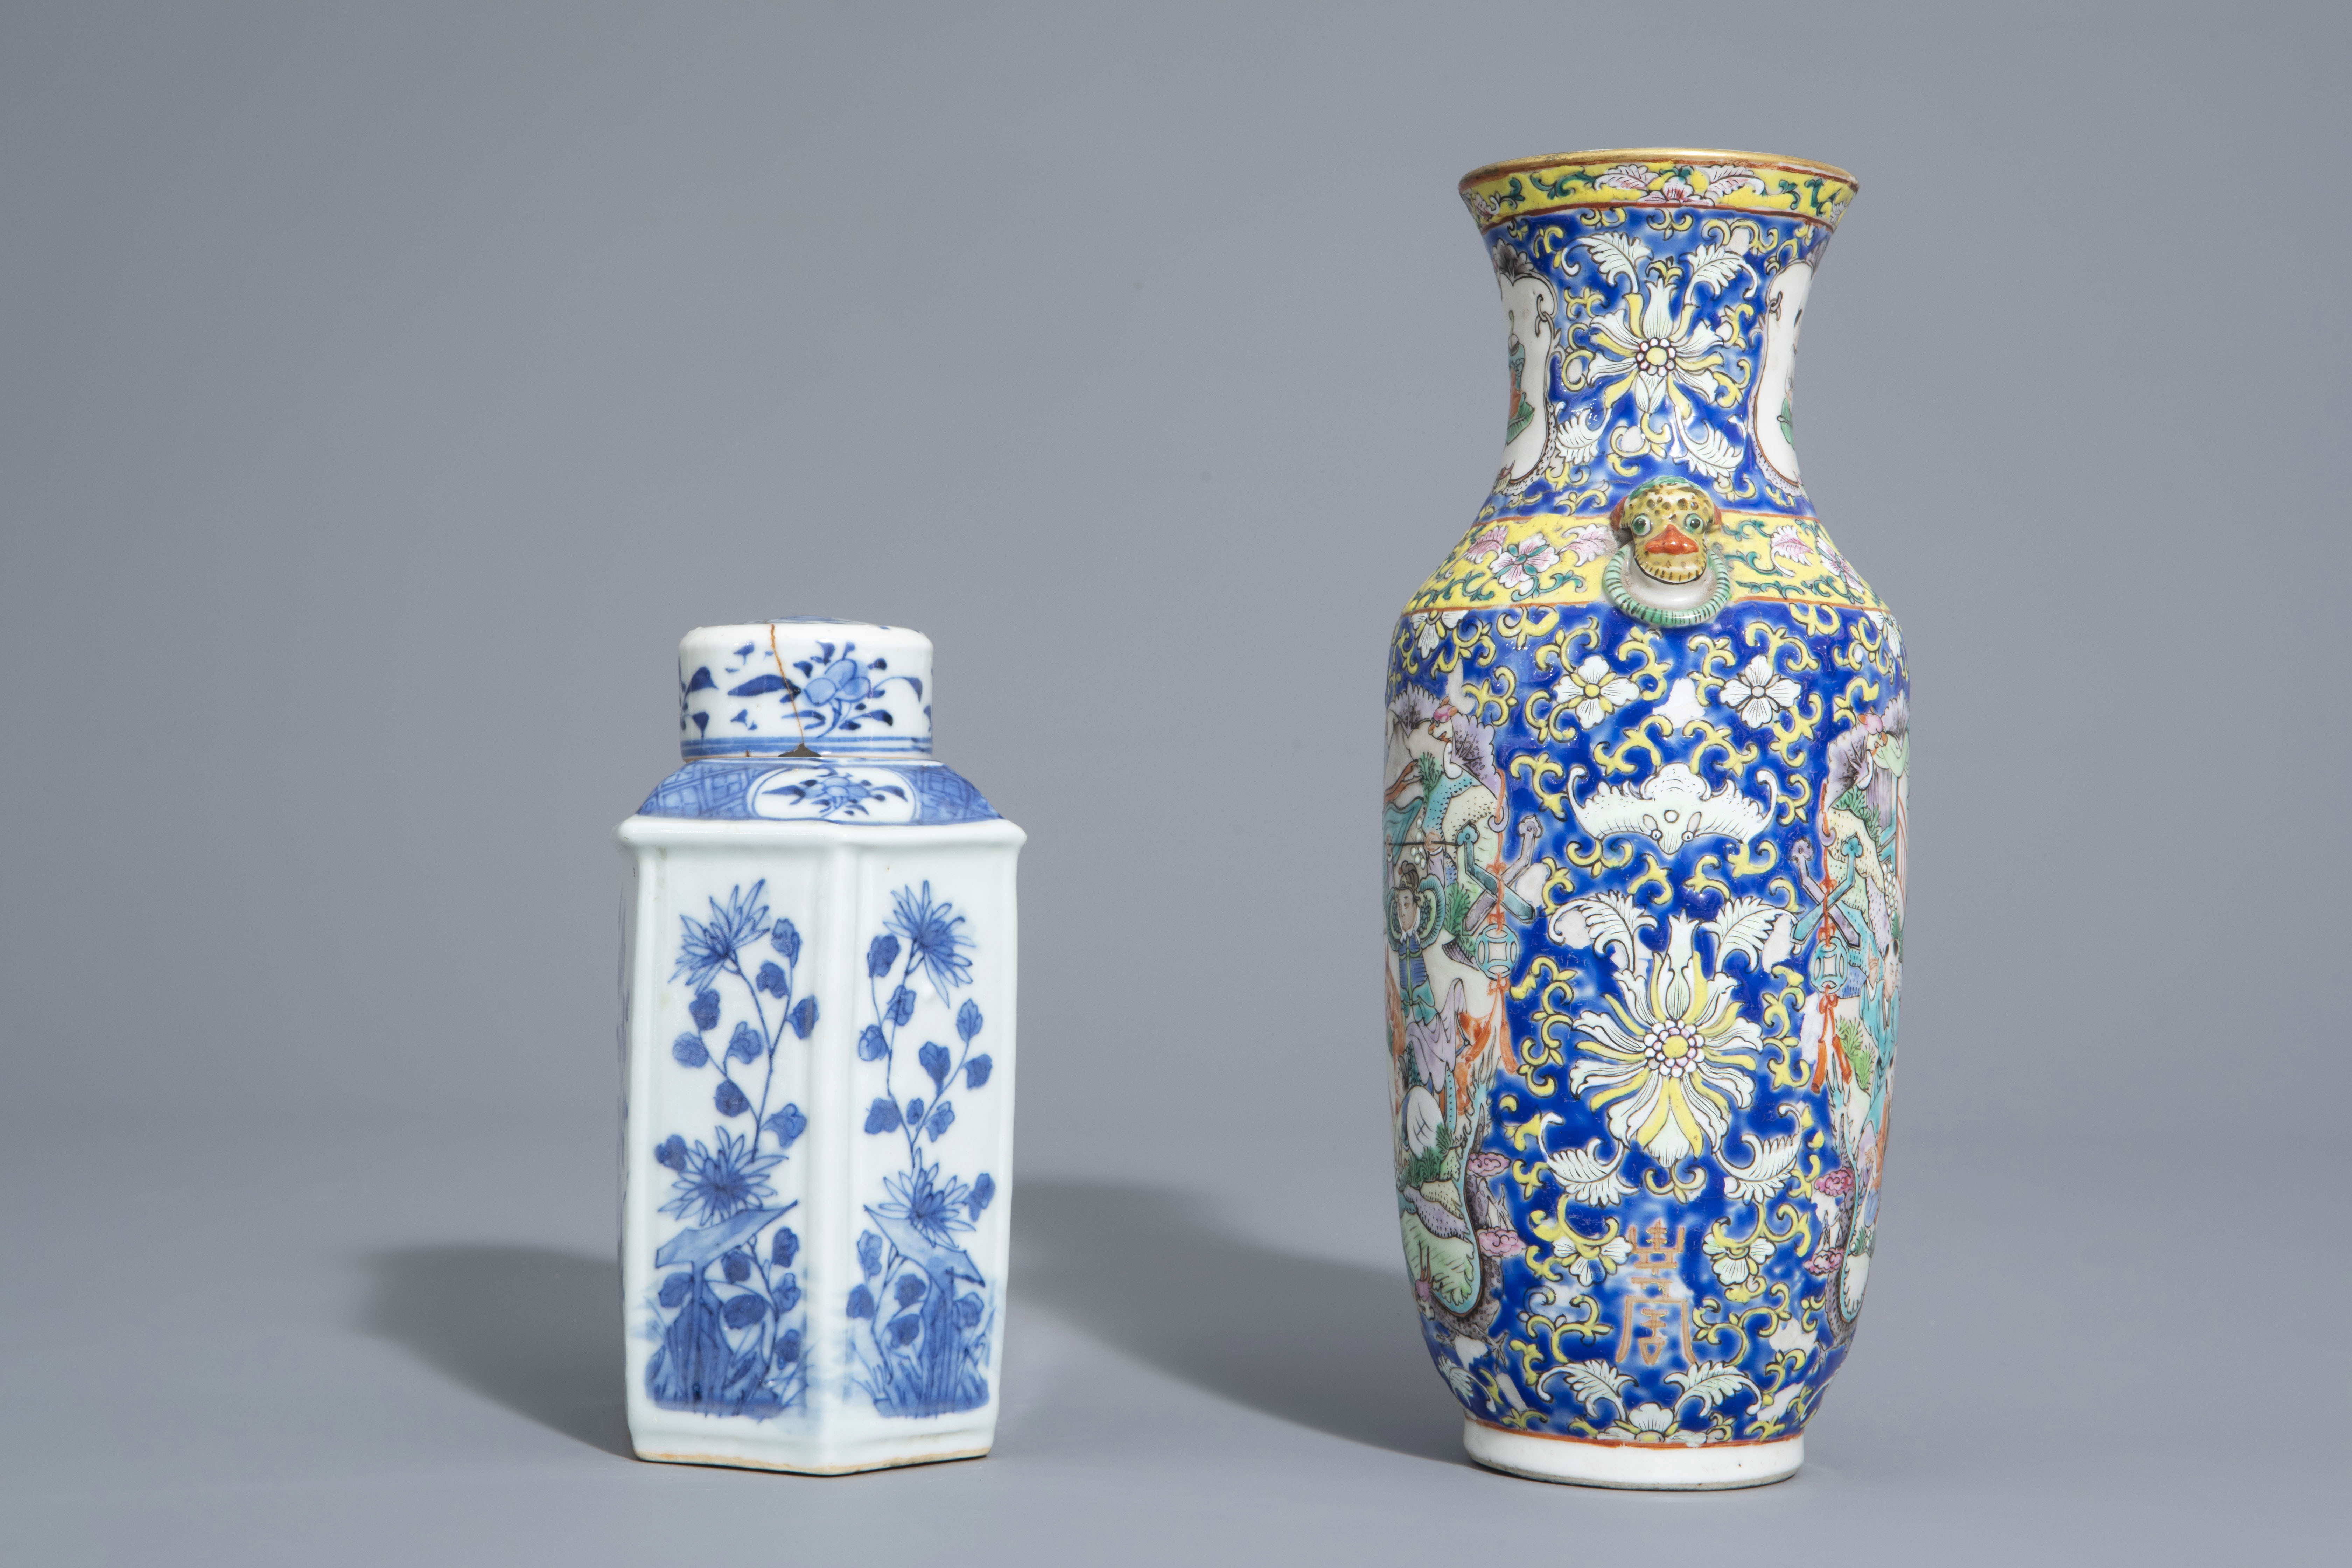 A varied collection of Chinese blue and white and famille rose porcelain, 19th/20th C. - Image 5 of 15